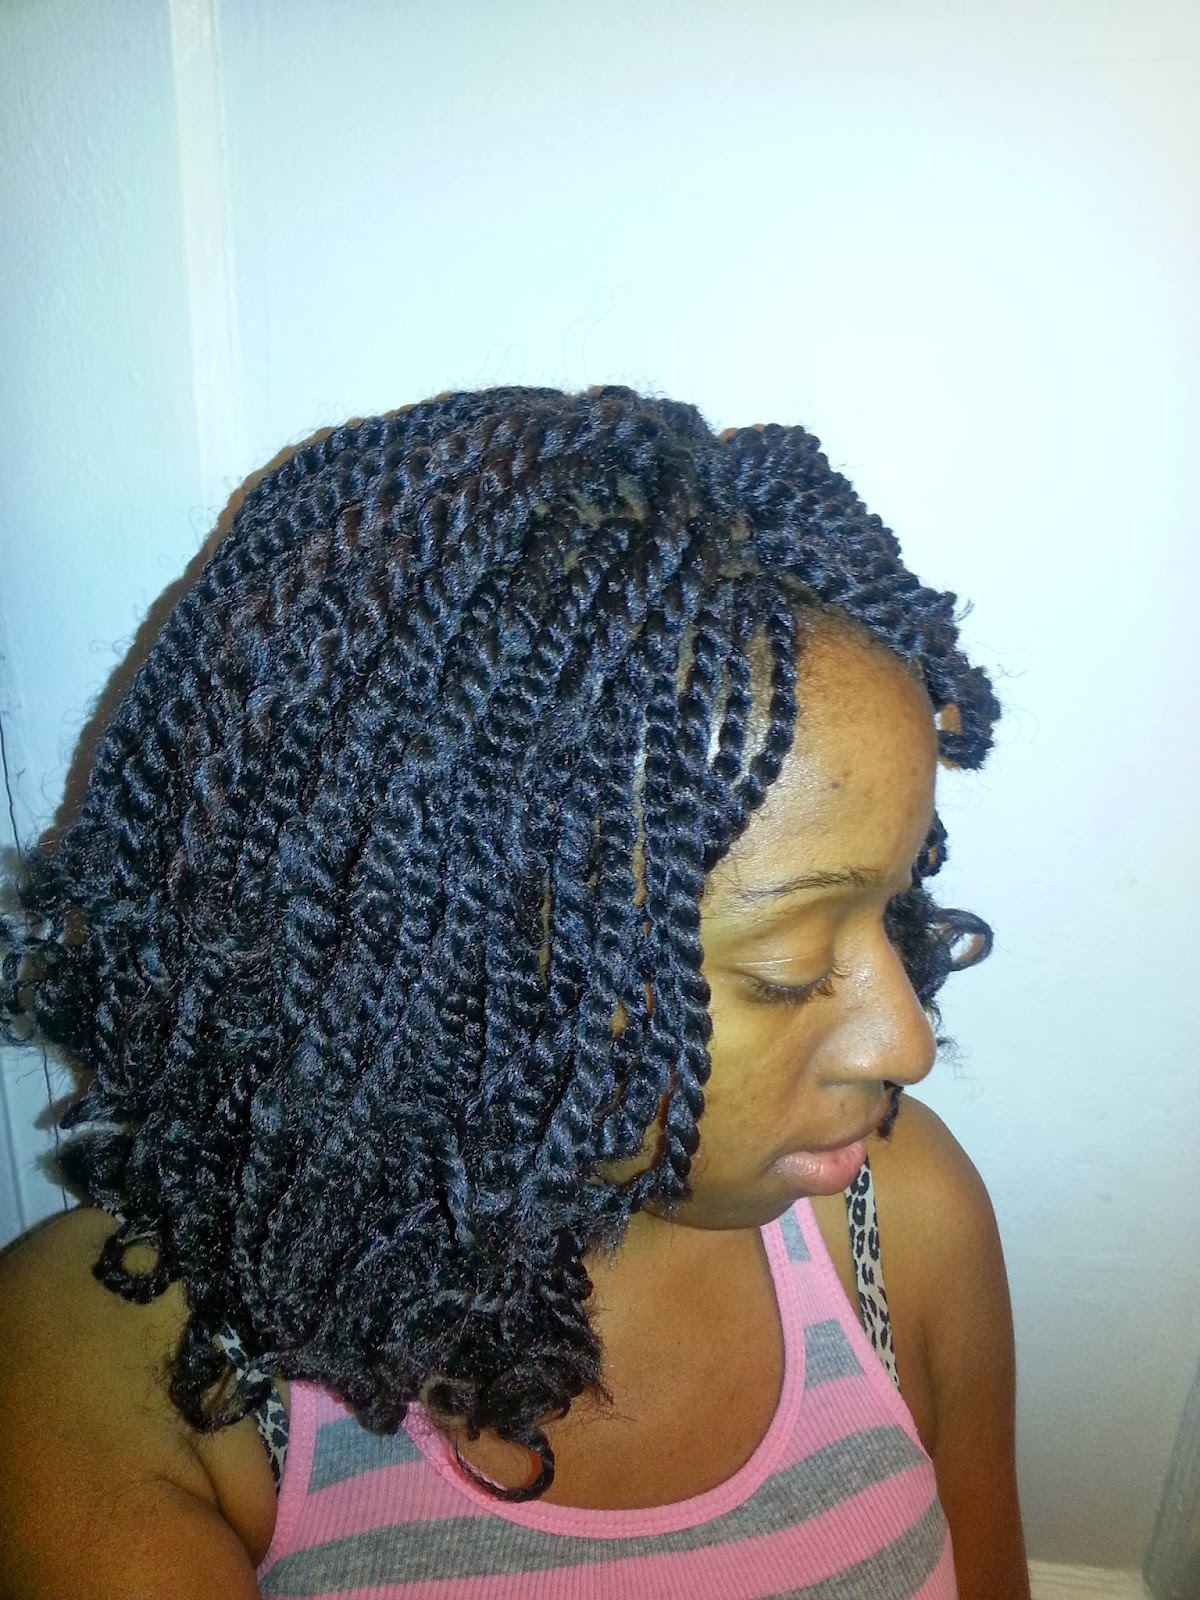 Crochet Hair Untwisted : ... is the Crochet Twists and how it looked when I untwisted the hair